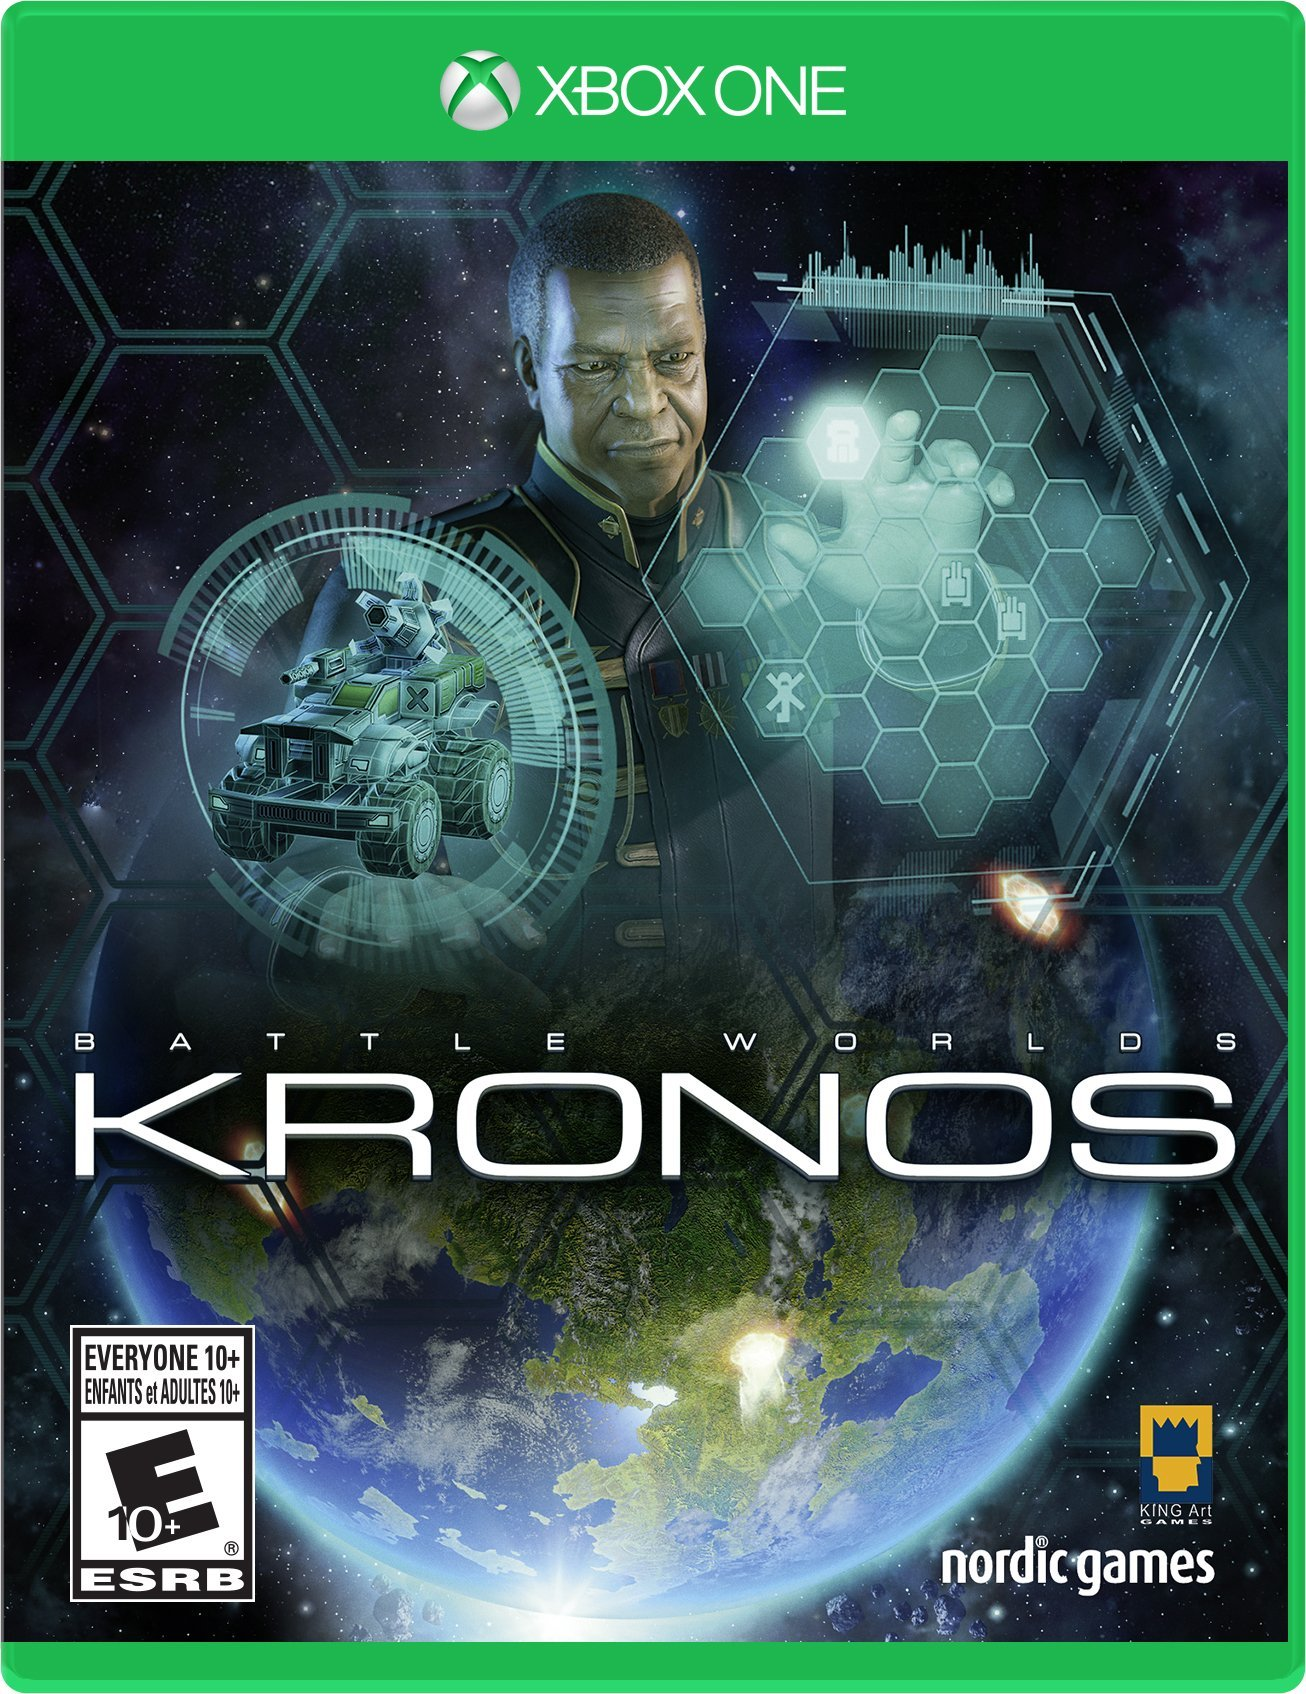 Xbox One Release Games : Battle worlds kronos release date xbox one ps